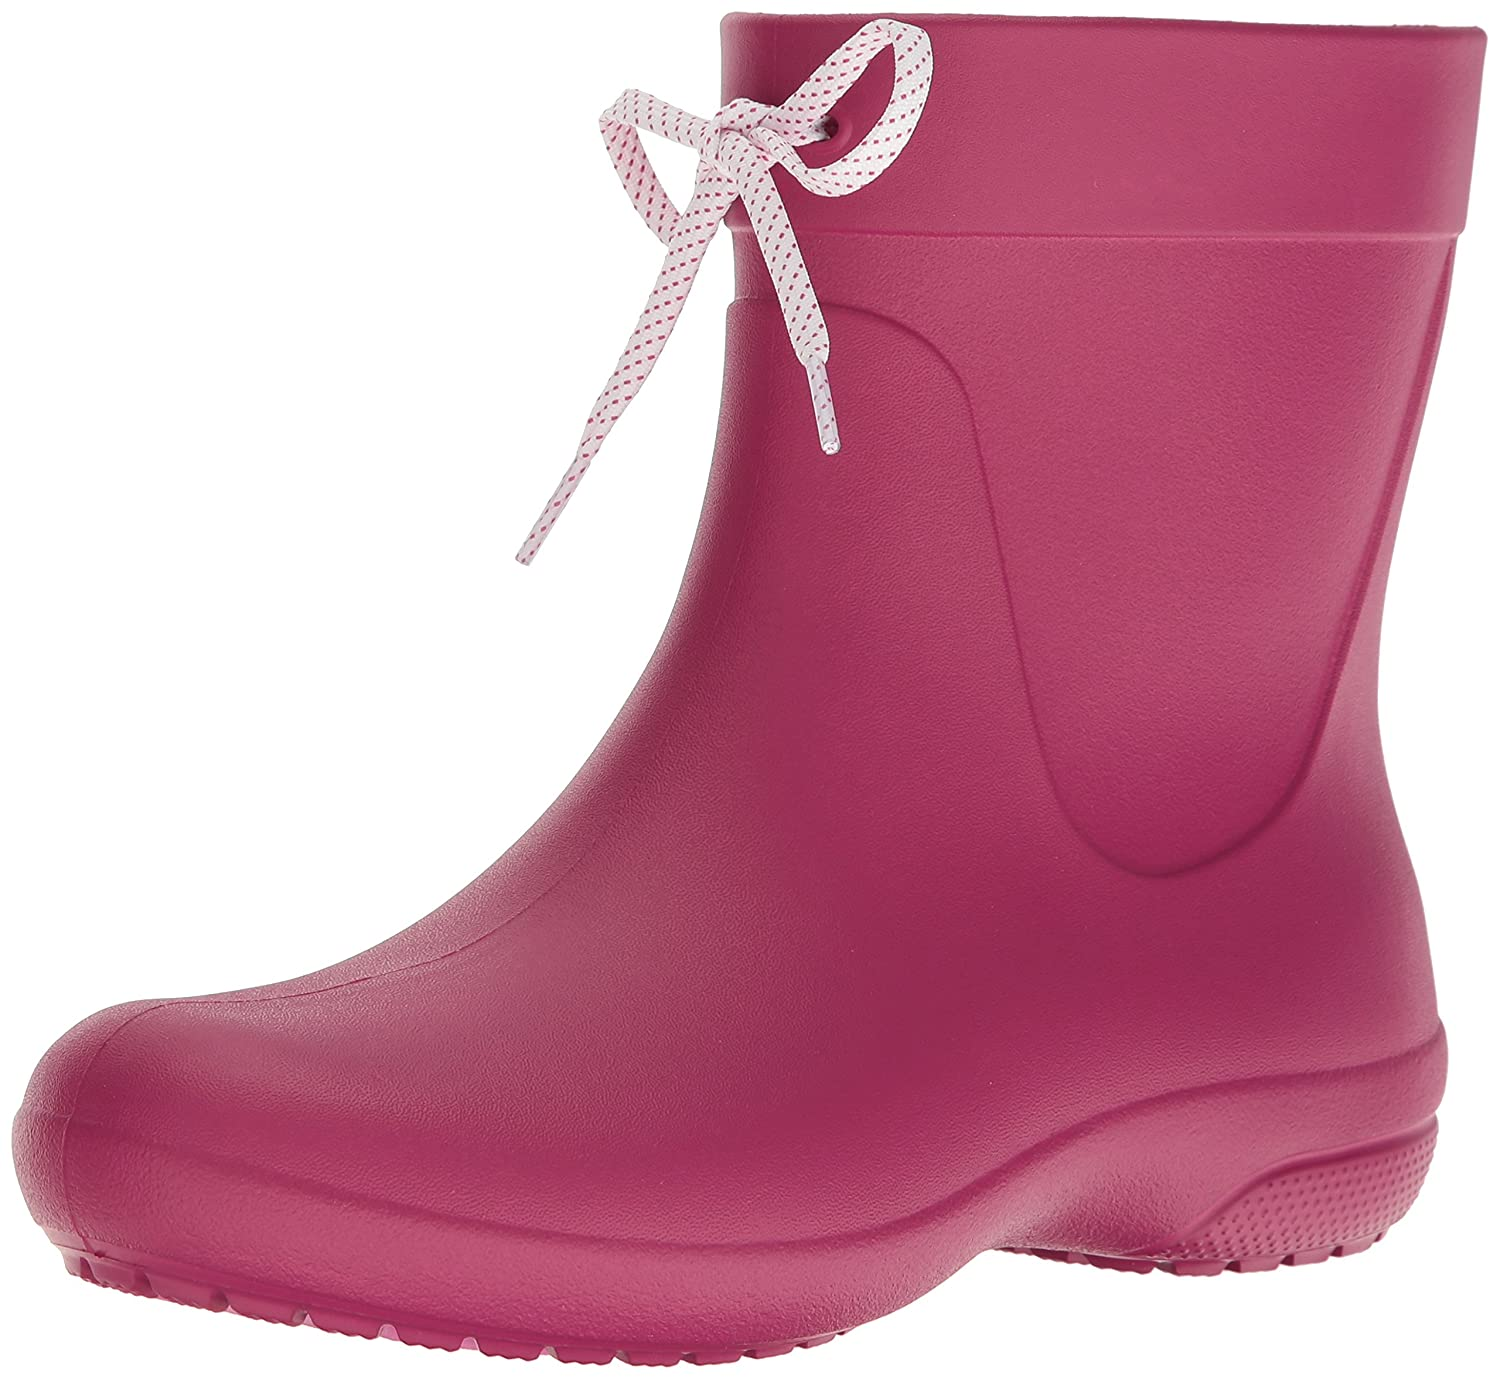 Crocs Freesail Shorty B072SWLCB9 Rain (Berry) Boots, Bottes Shorty Femme Rose (Berry) 9c604b0 - www.boatplans.space